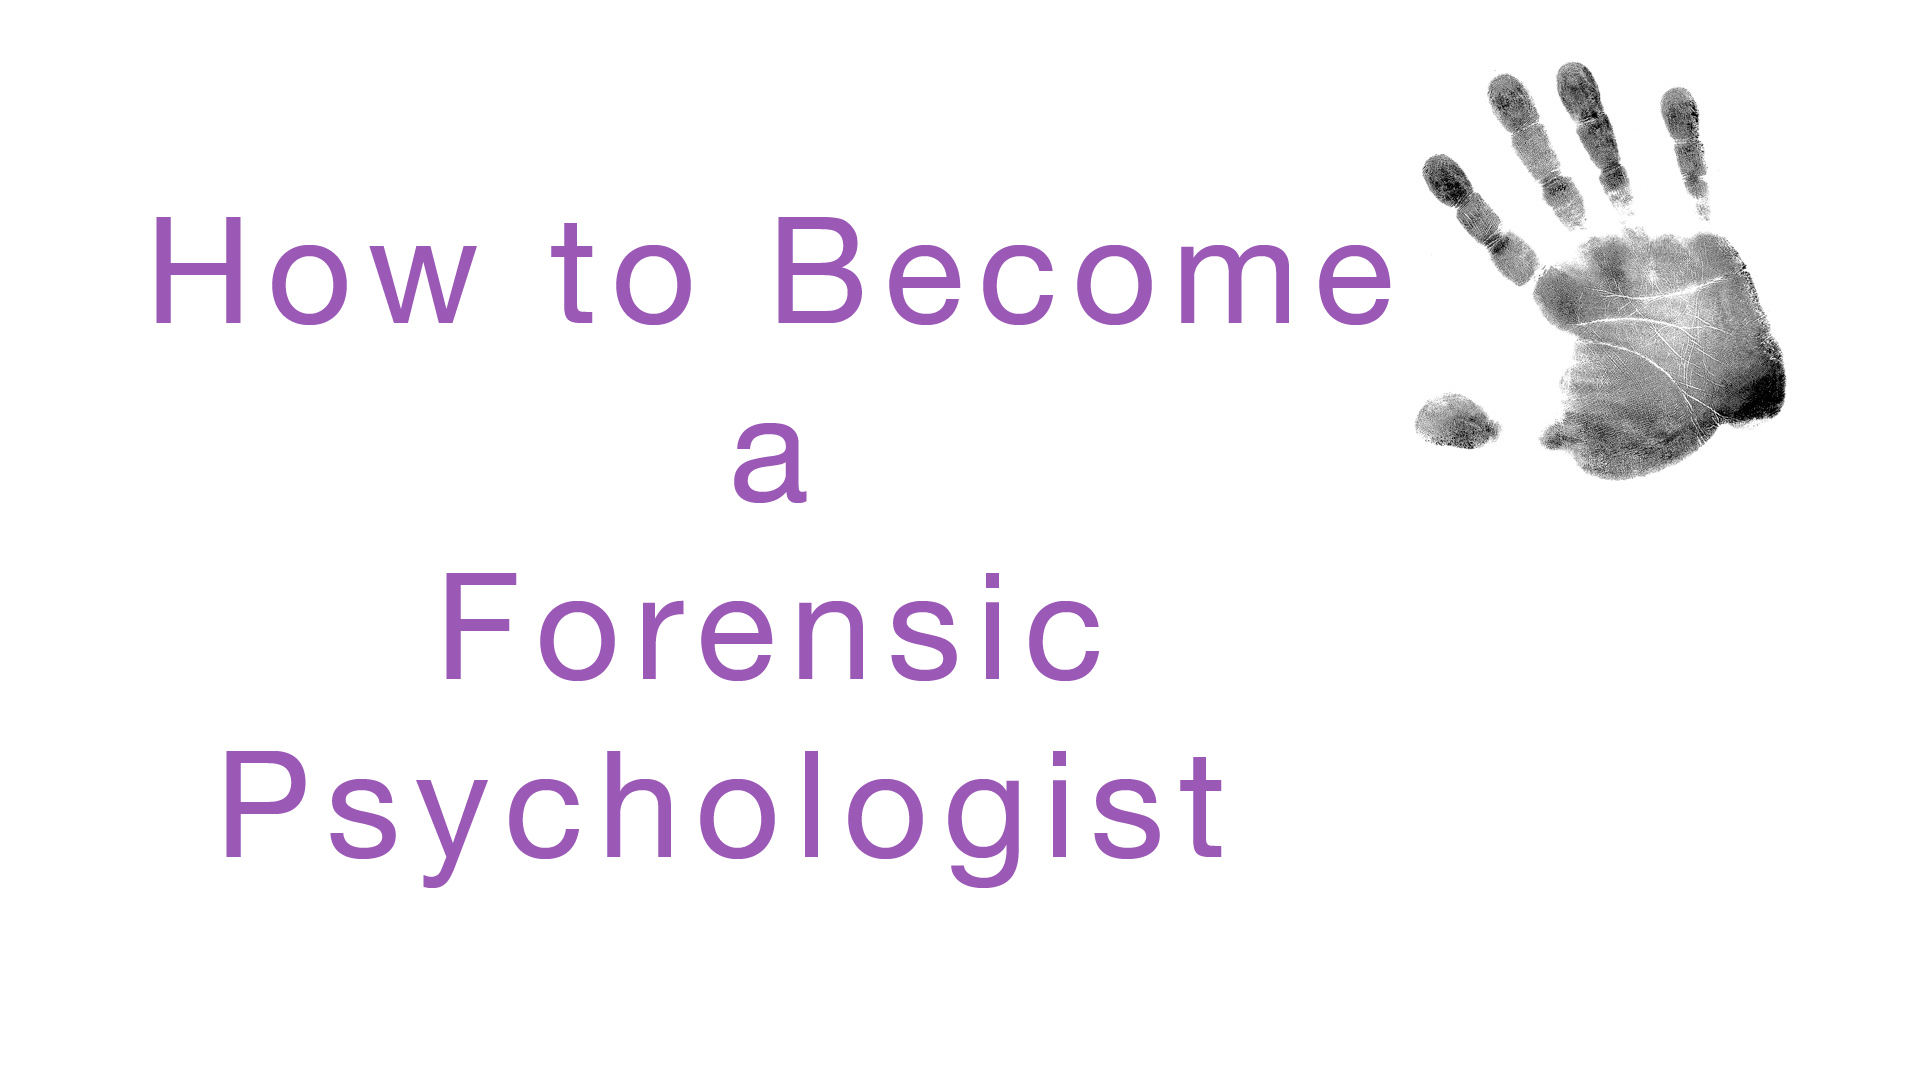 How to Become an Forensic Psychologist